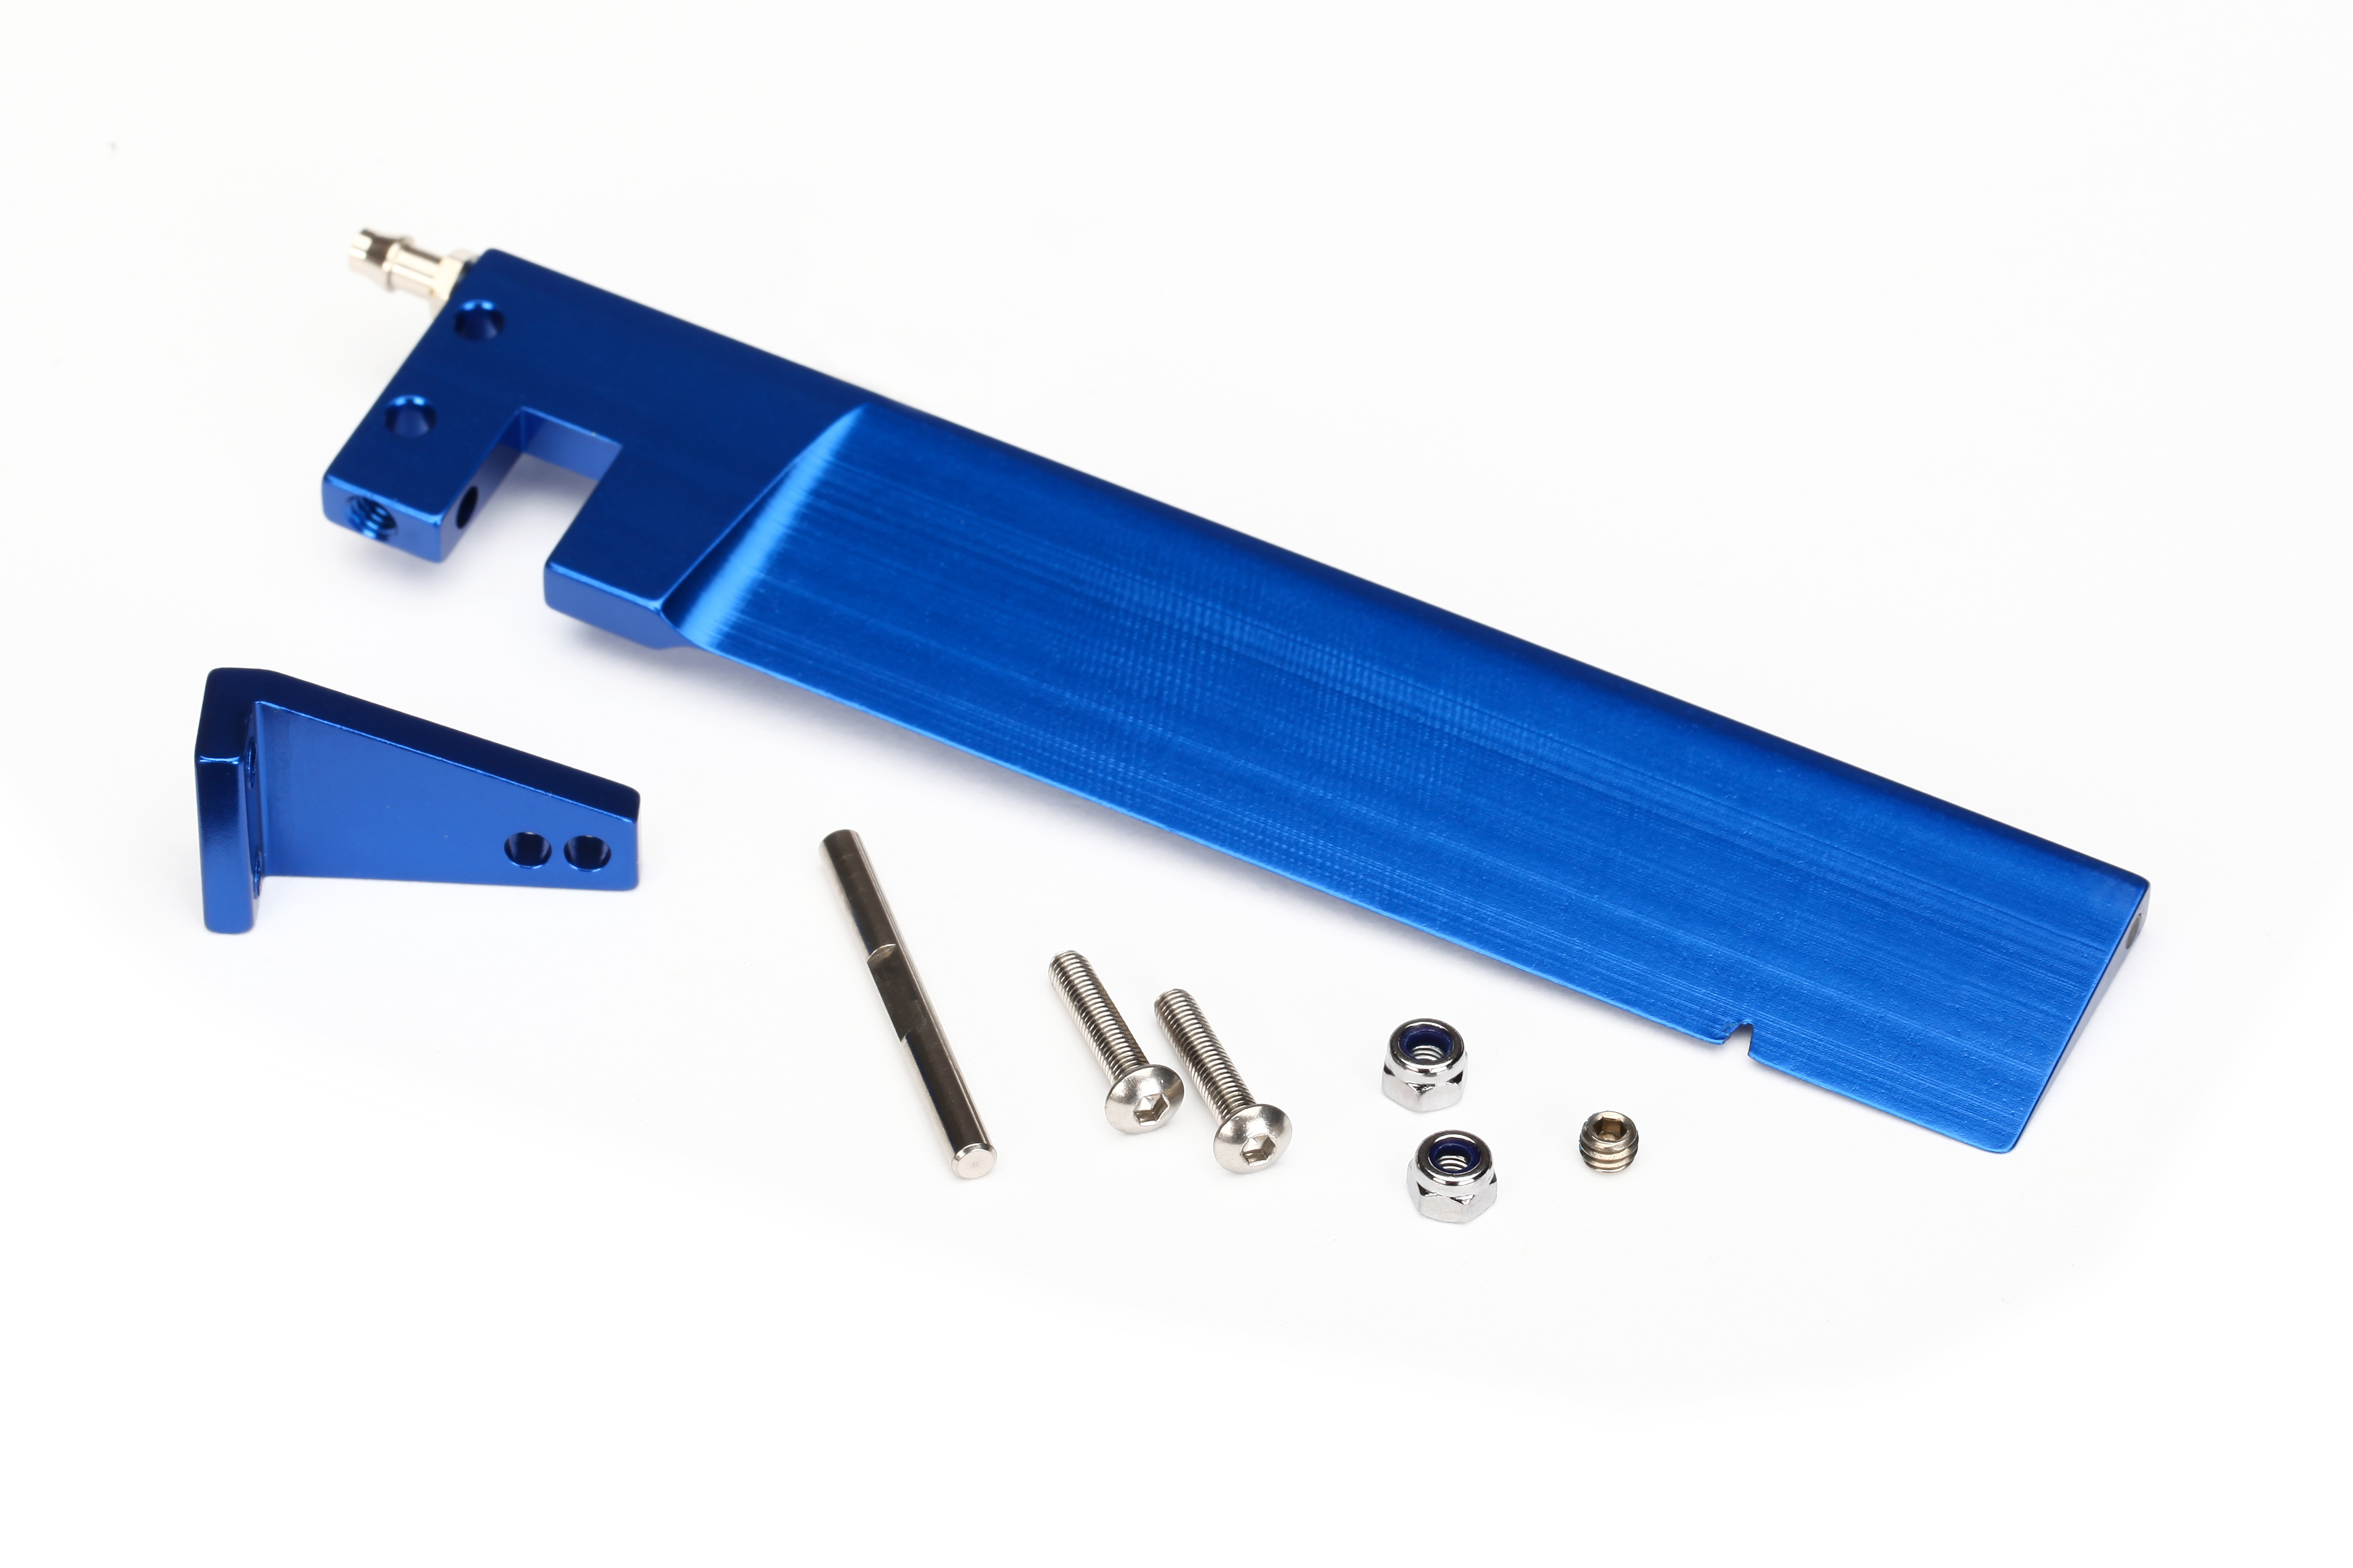 Traxxas 5779 Rudder (127.5 mm) /  rudder arm /  hinge pin /  3x15mm BCS (stainless) (2) /  NL 3.0 (2) /  4x3mm BCS (stainless ,  with threadlock) (1)